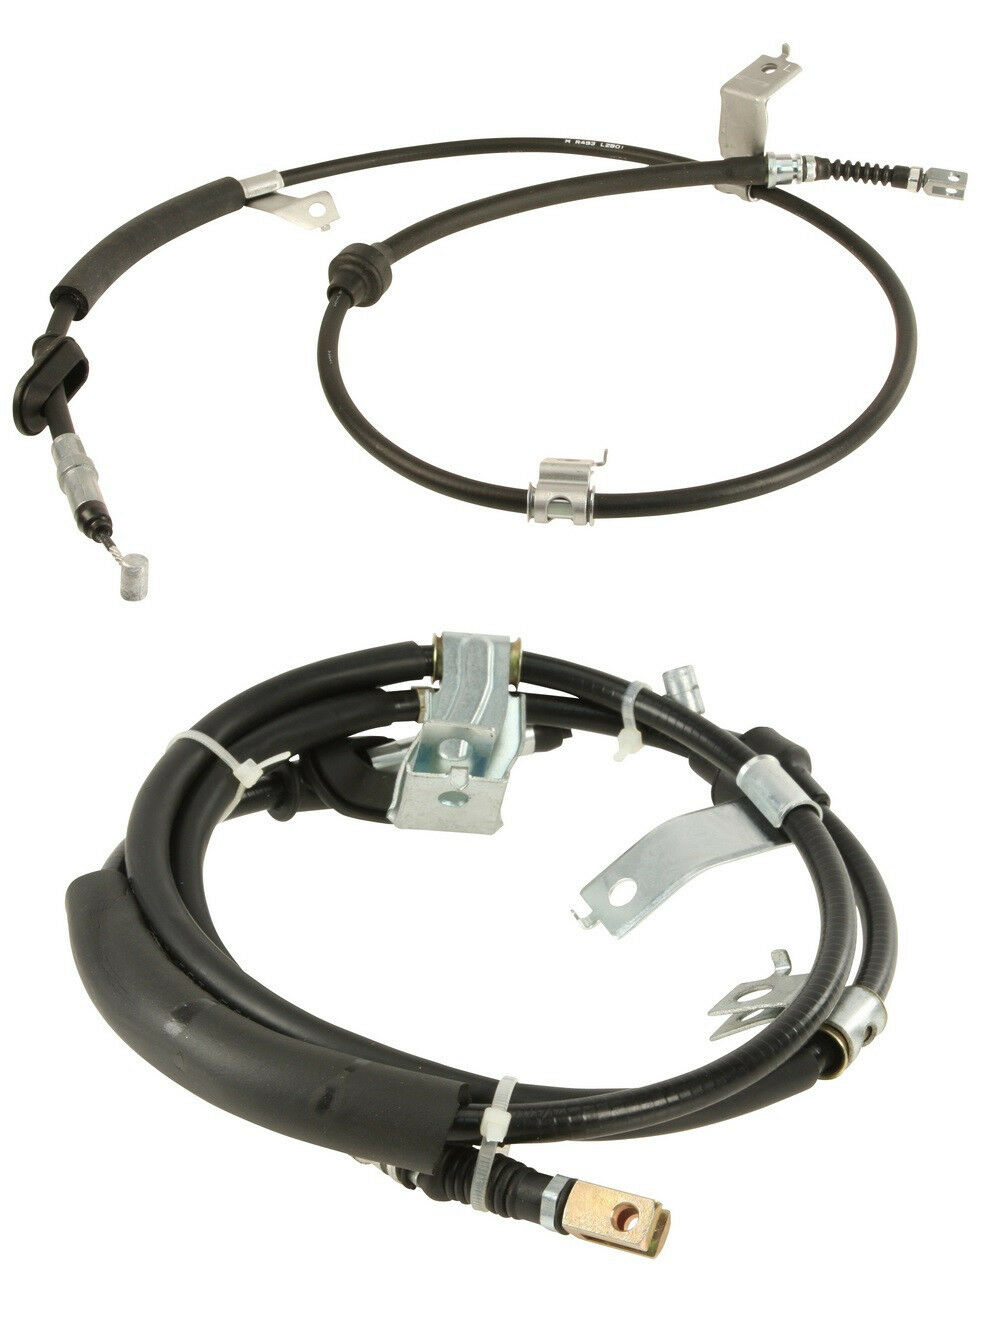 Honda Civic Acura Integra Set Left + Right Parking Brake Cables 1 of 1FREE  Shipping See More